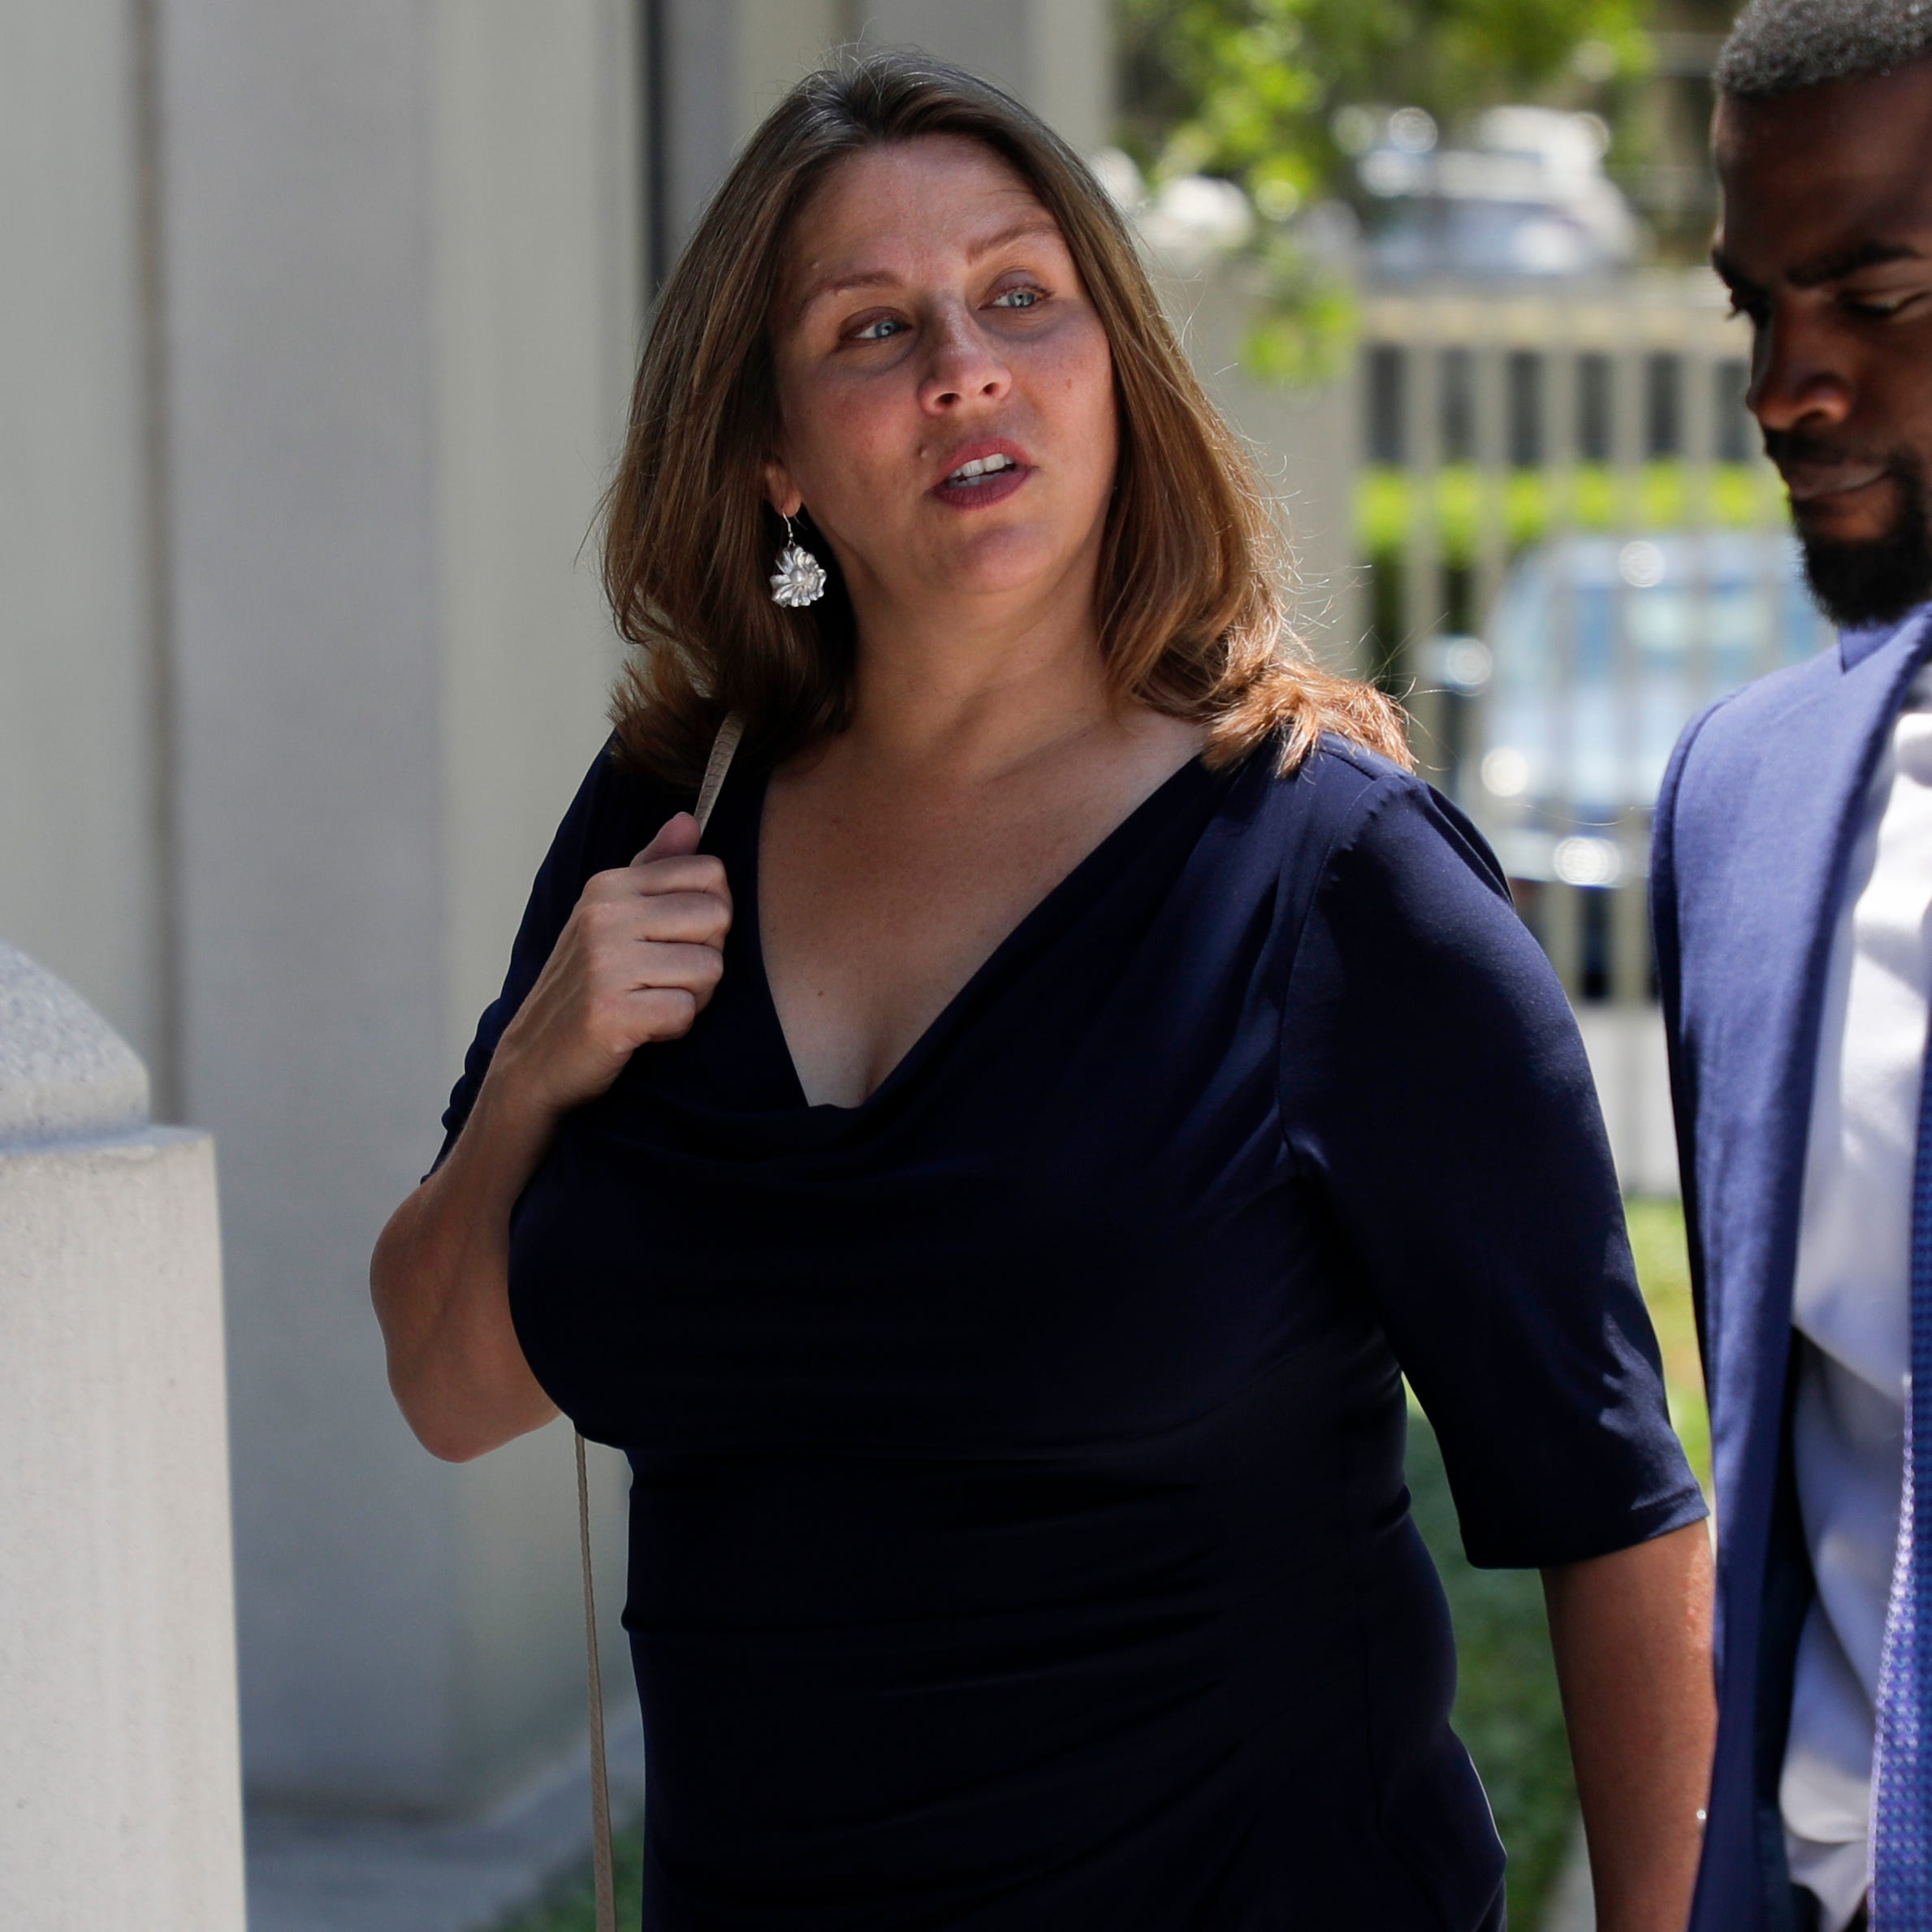 Carter-Smith's lawyer in corruption case wants to withdraw because she can't pay fees